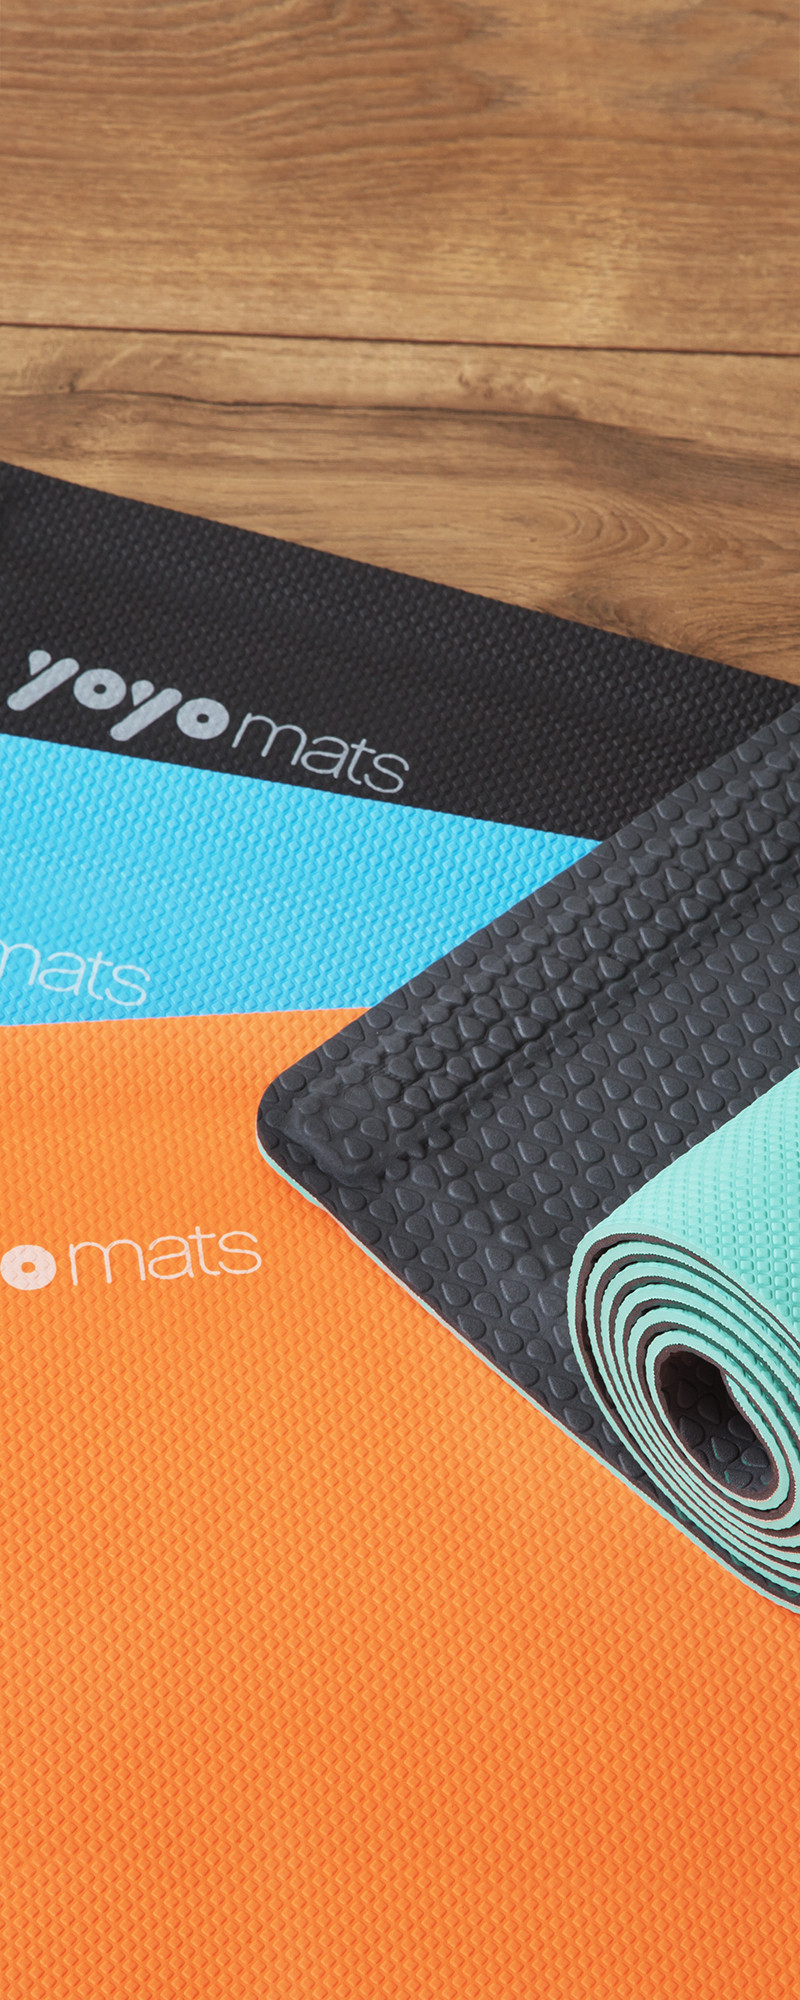 Self Rolling Fitness Amp Yoga Mat By Yoyo Mats The Grommet